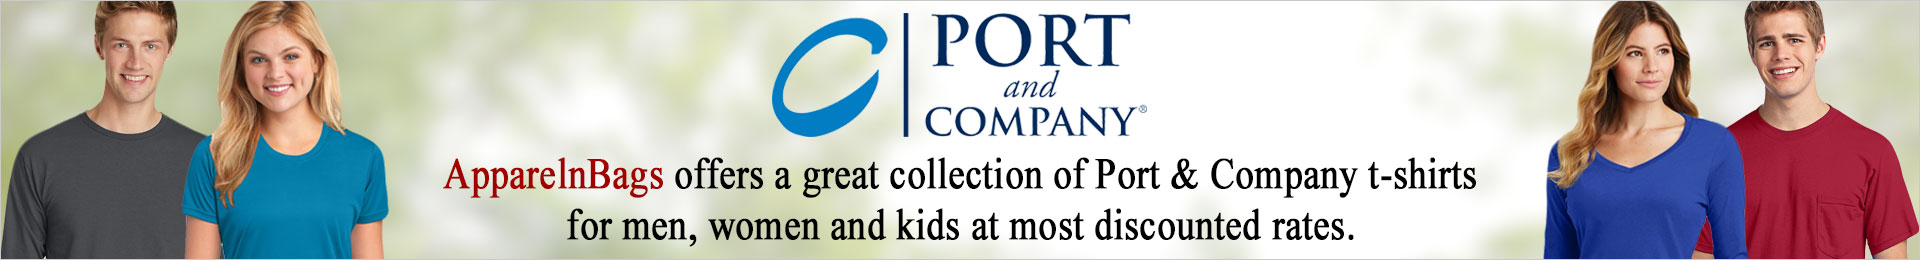 Port And Company T-Shirts